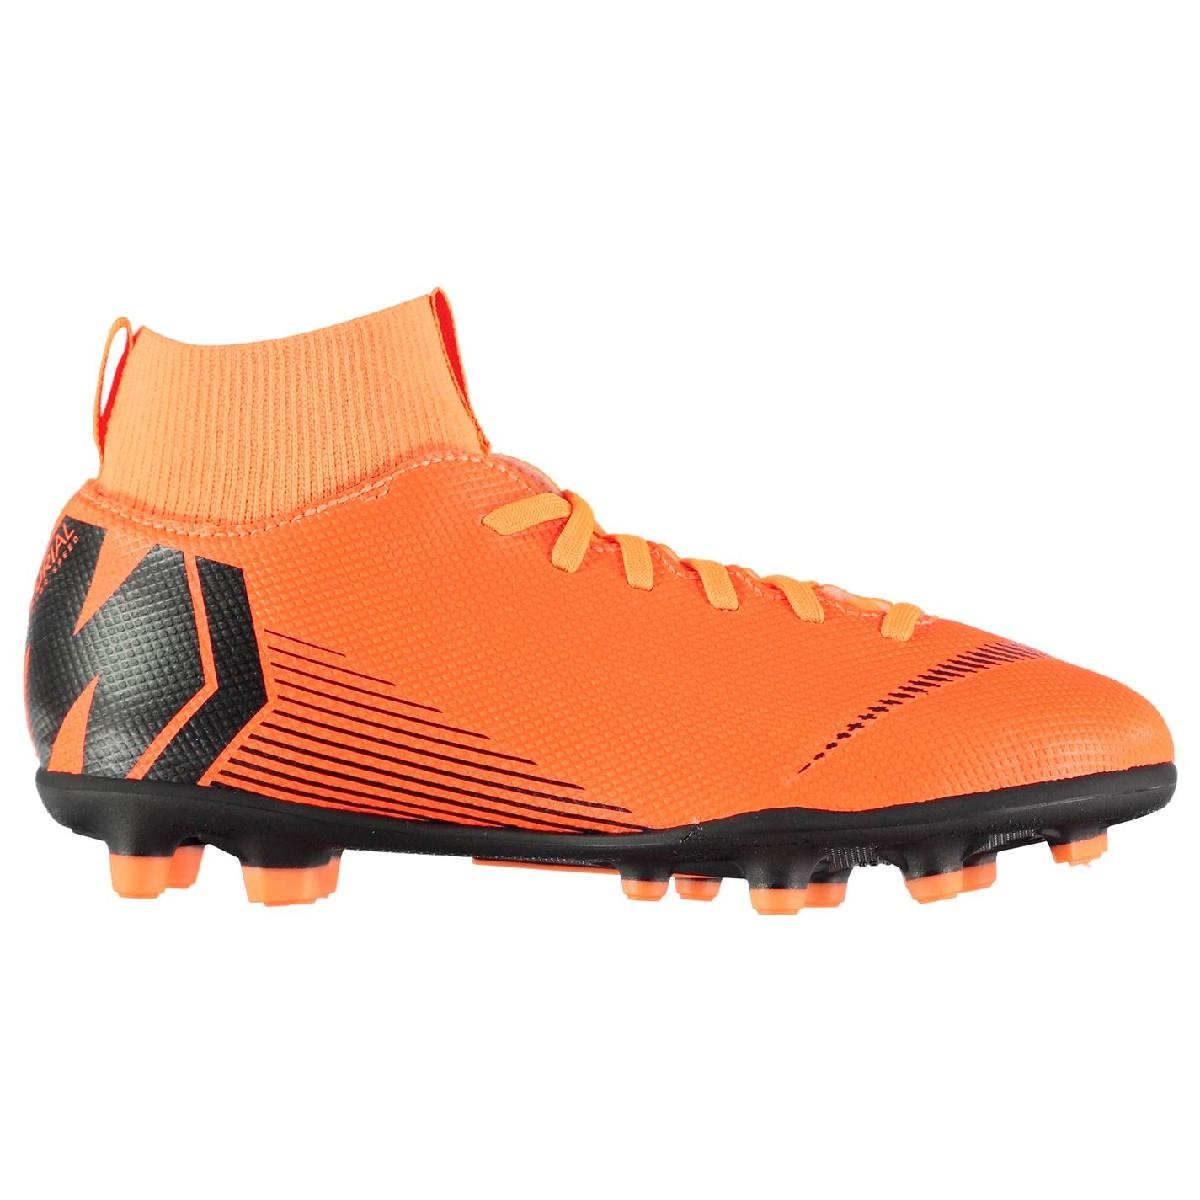 cdfba20ffd75 Nike Mercurial Football Boots   Nike × Men and Women s shoes 2018 ...